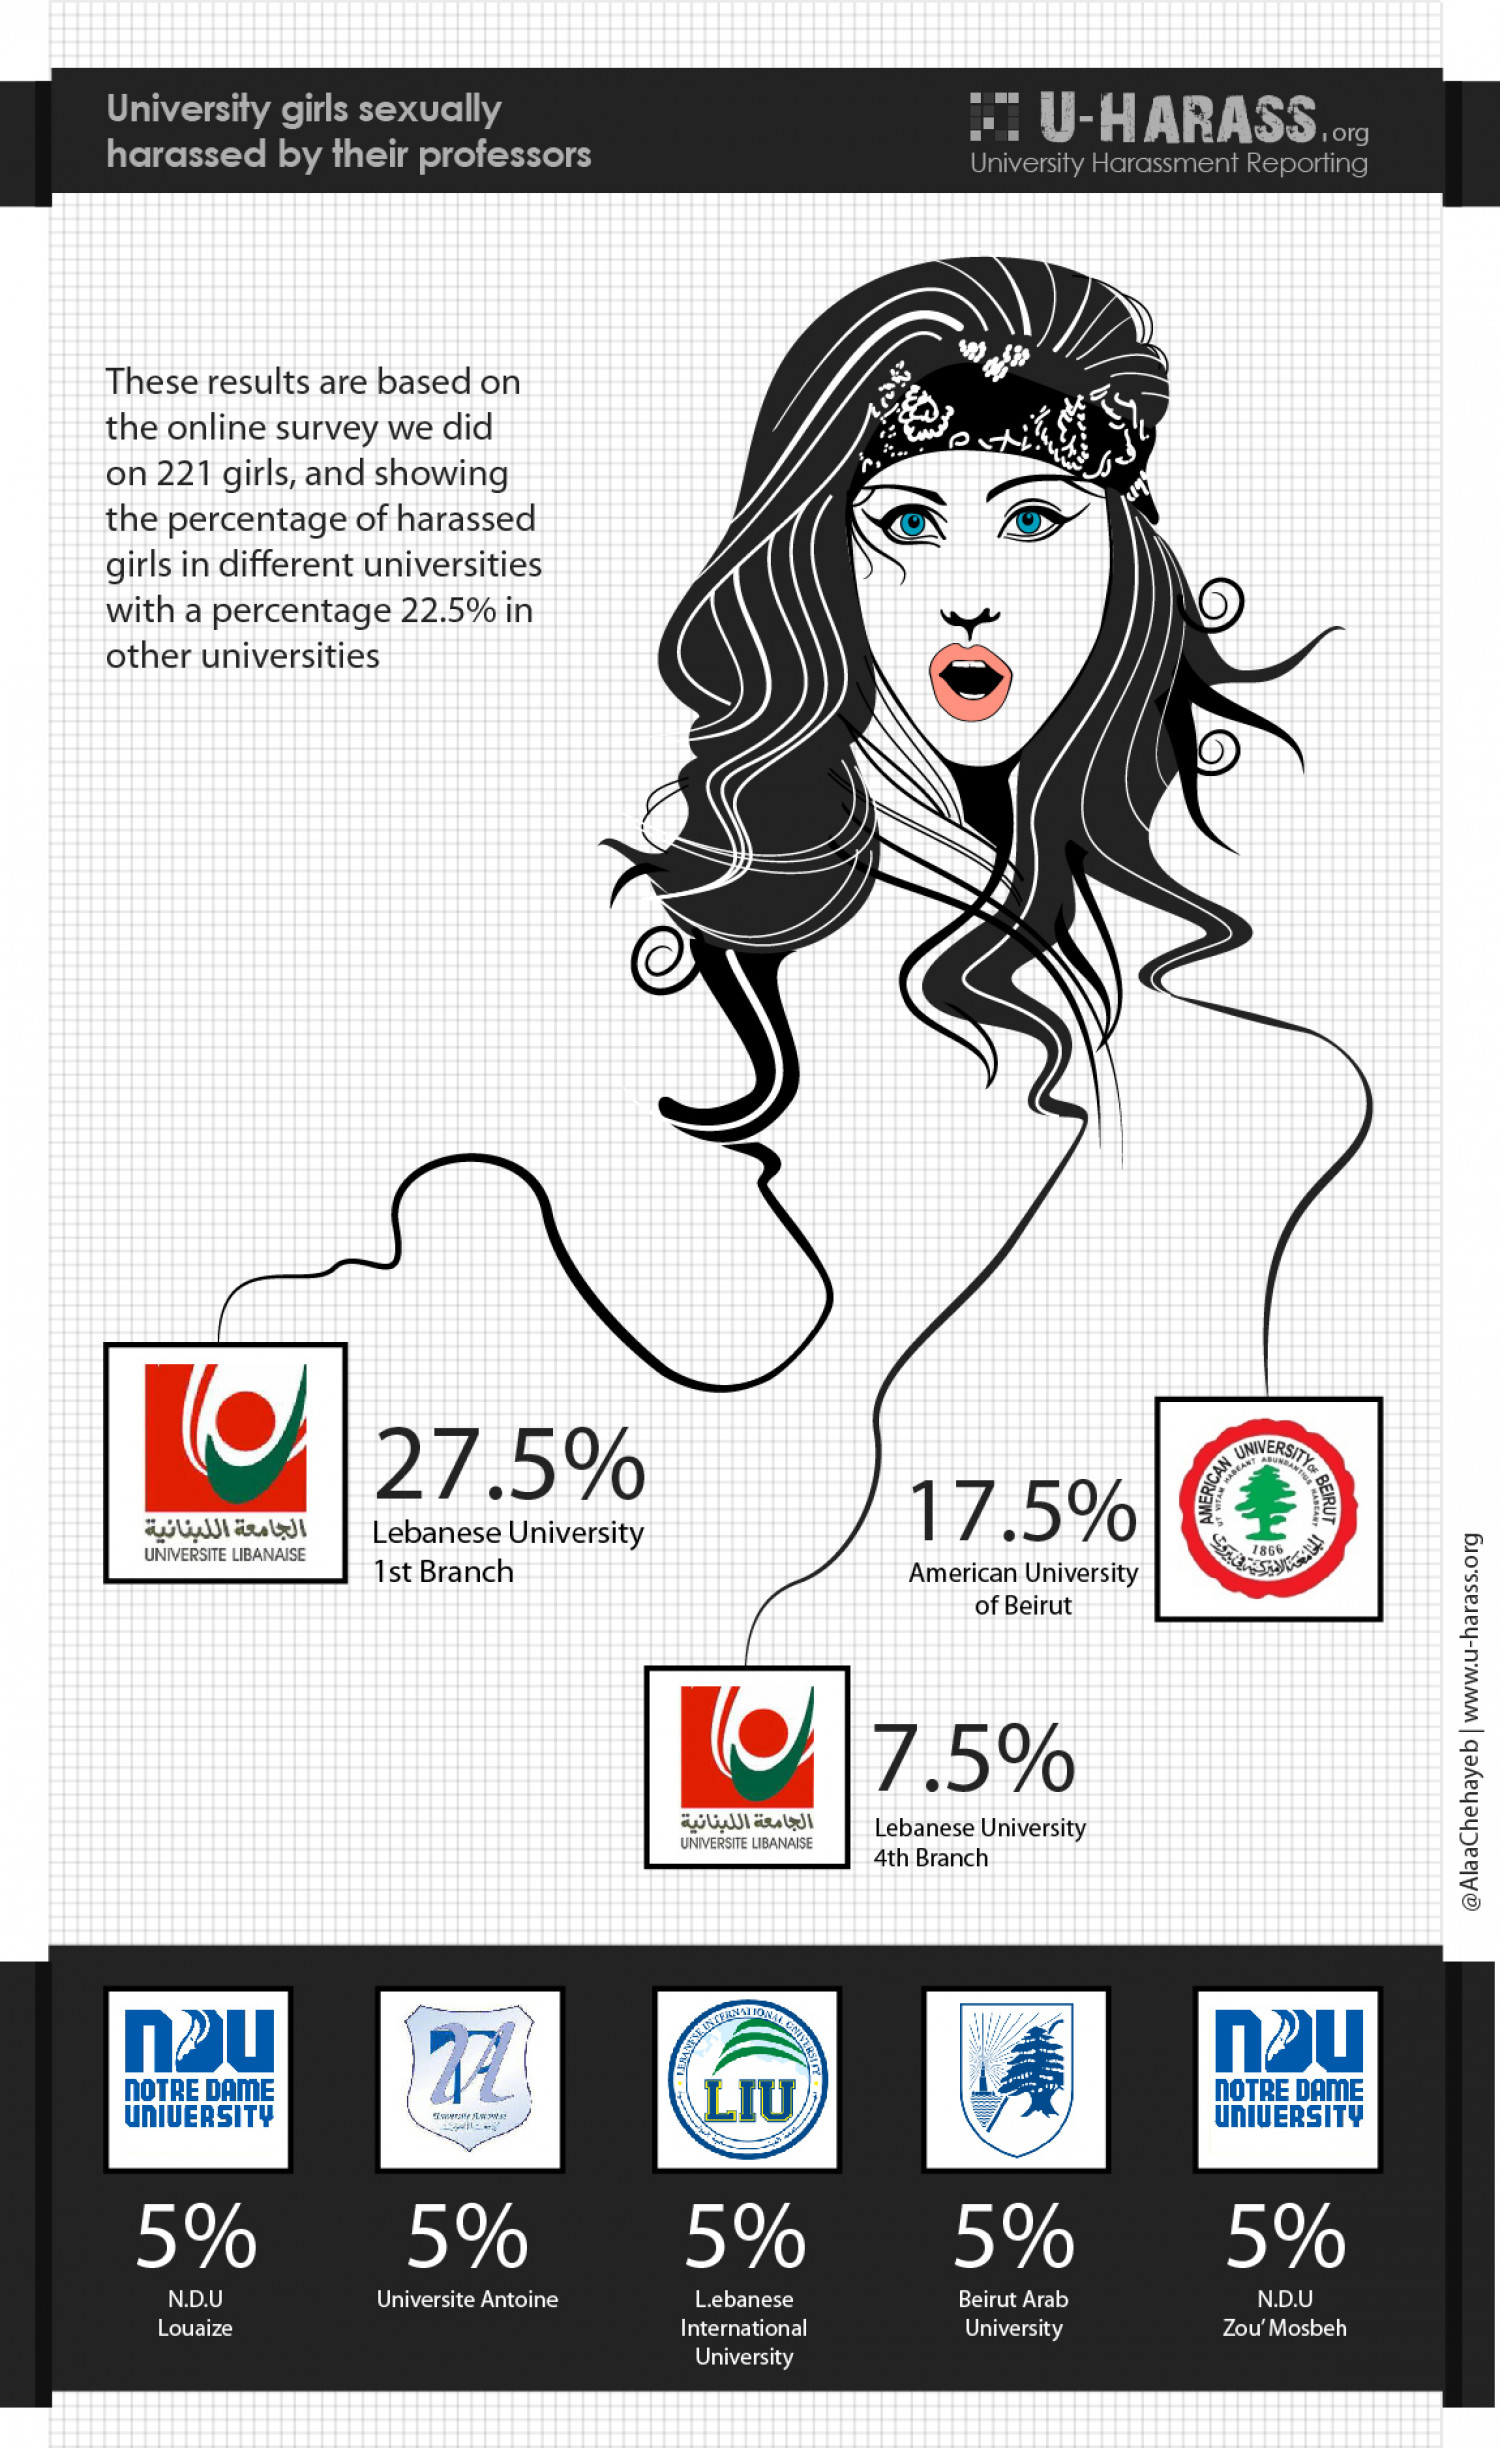 Sexual Harassment by University Professors in Lebanon Infographic